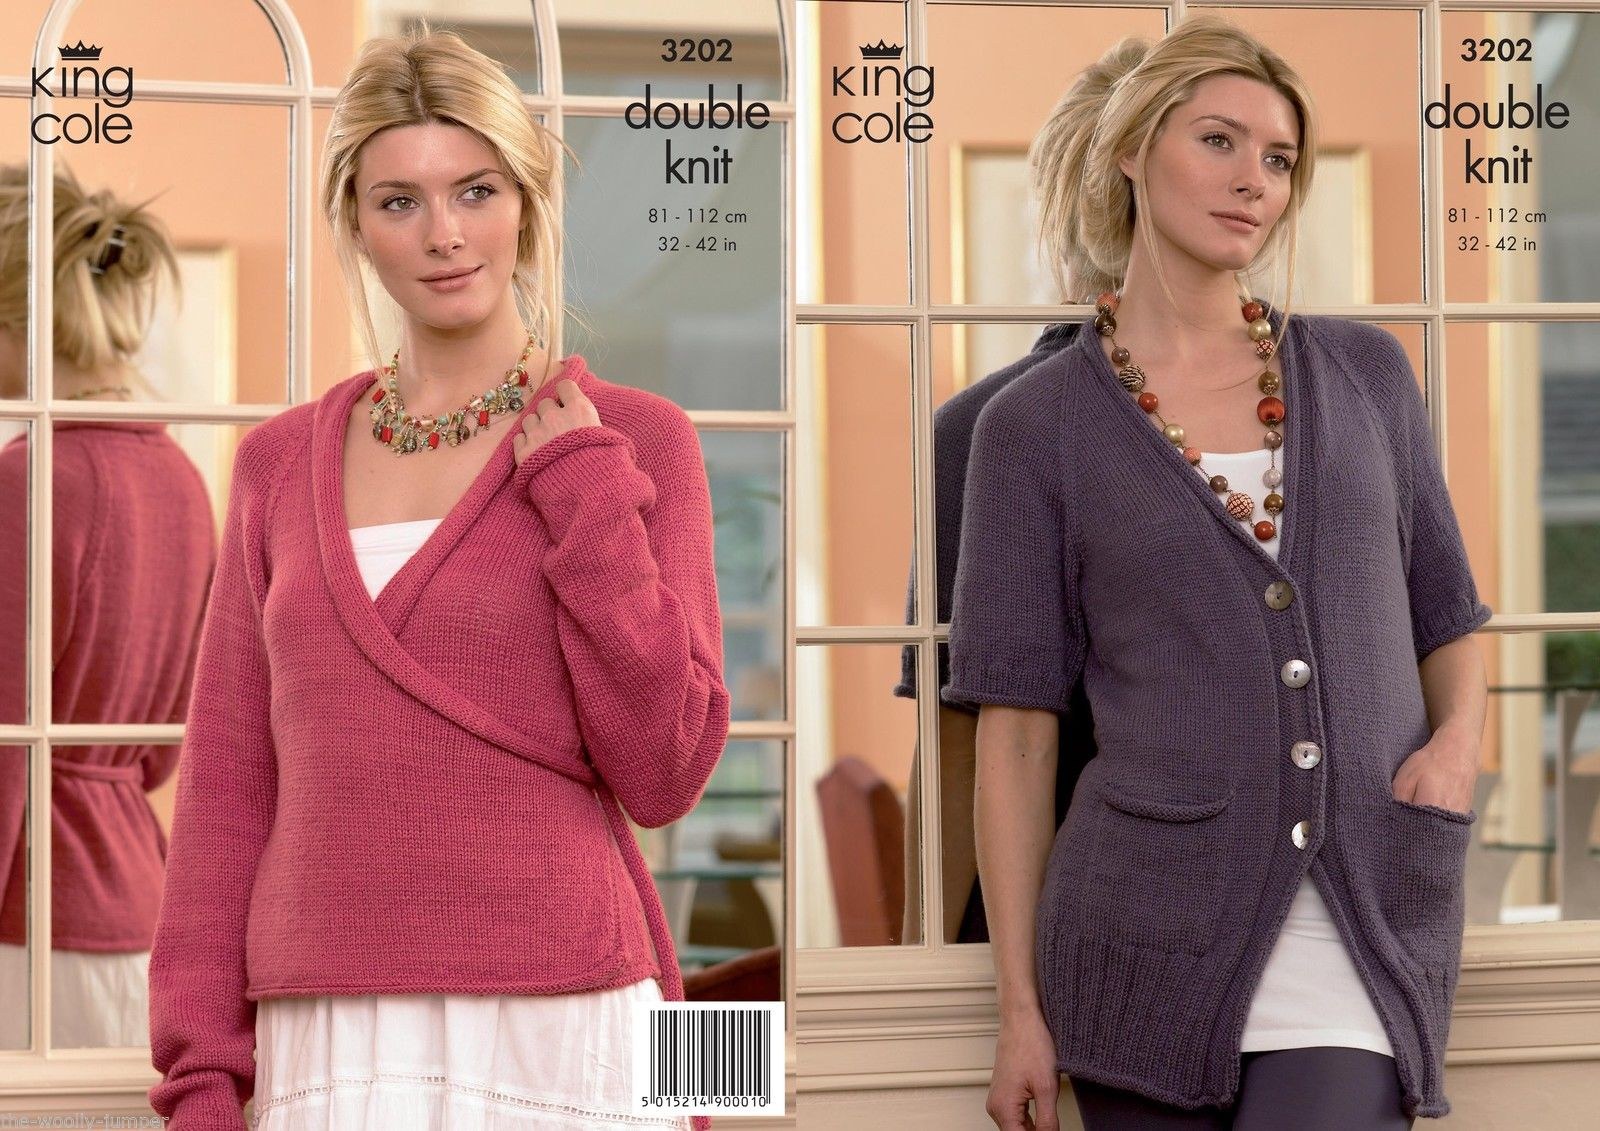 3202 - KING COLE BABY ALPACA DK CARDIGAN KNITTING PATTERN ...